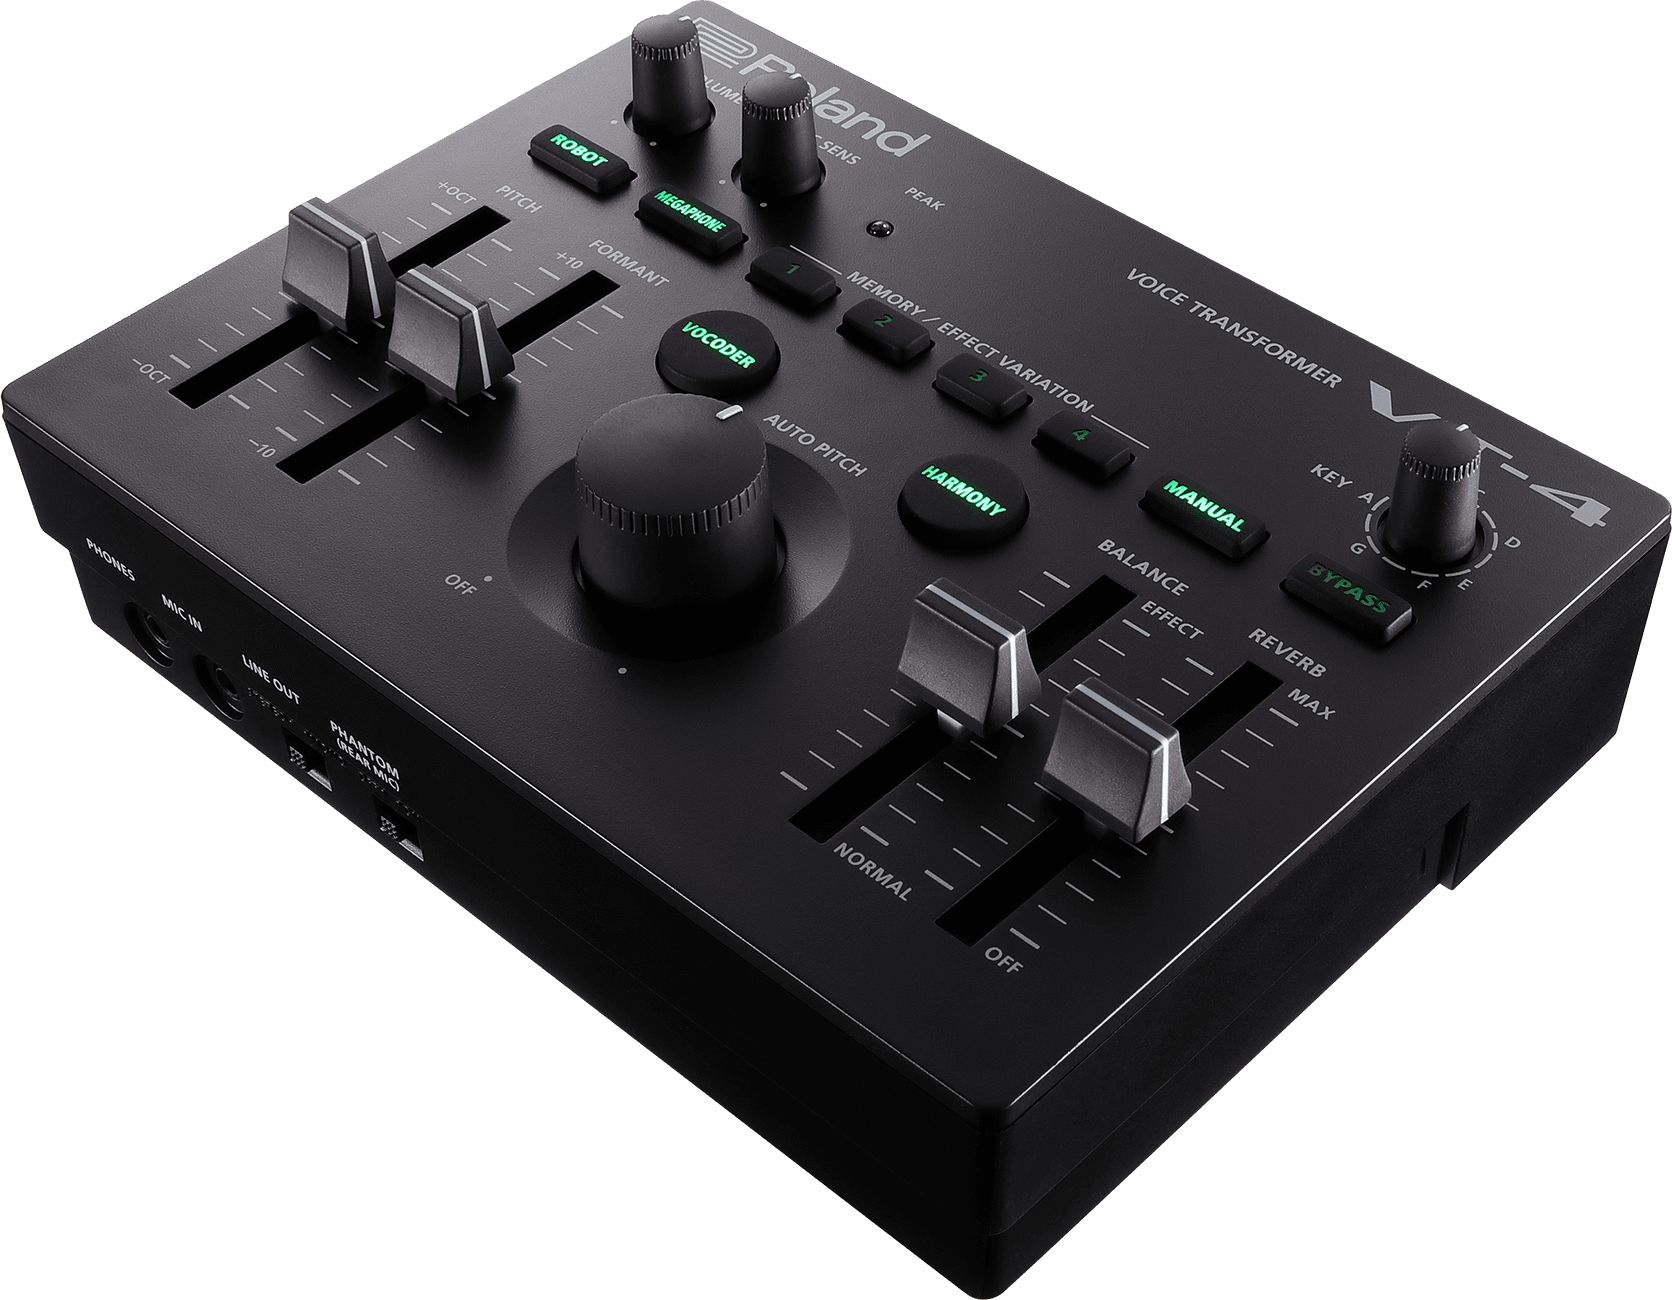 https://static.roland.com/products/vt-4/images/hero.png